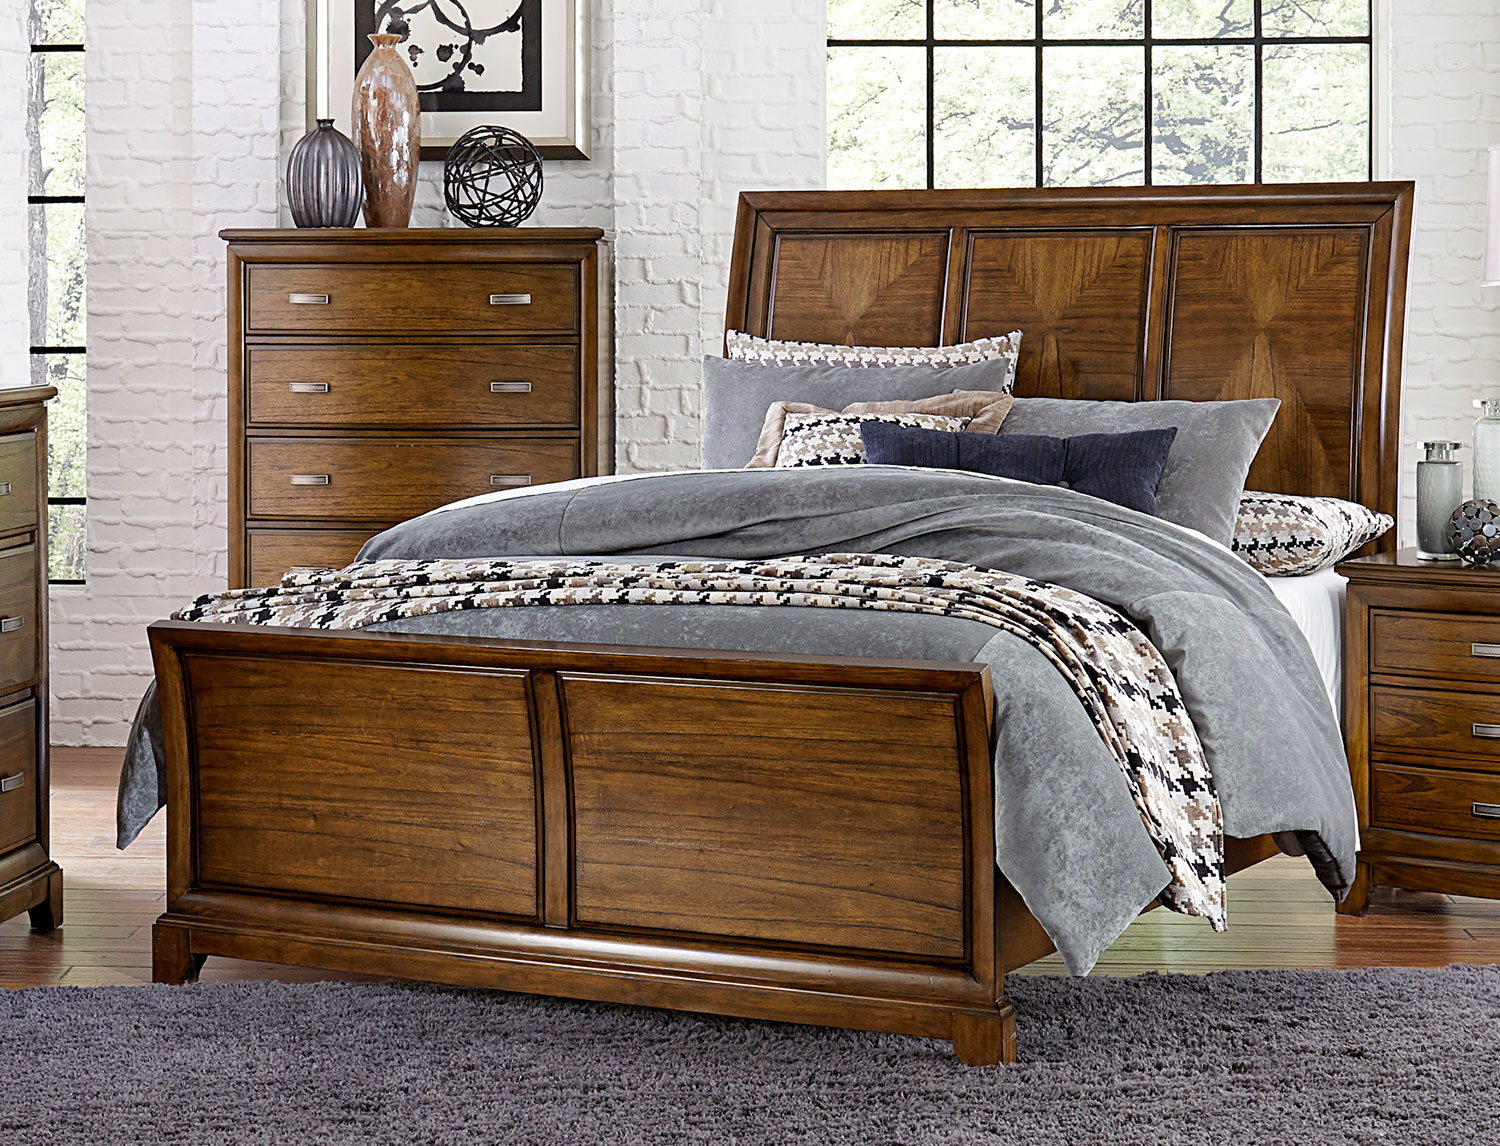 Homelegance Terron Sleigh Bed - Medium Oak